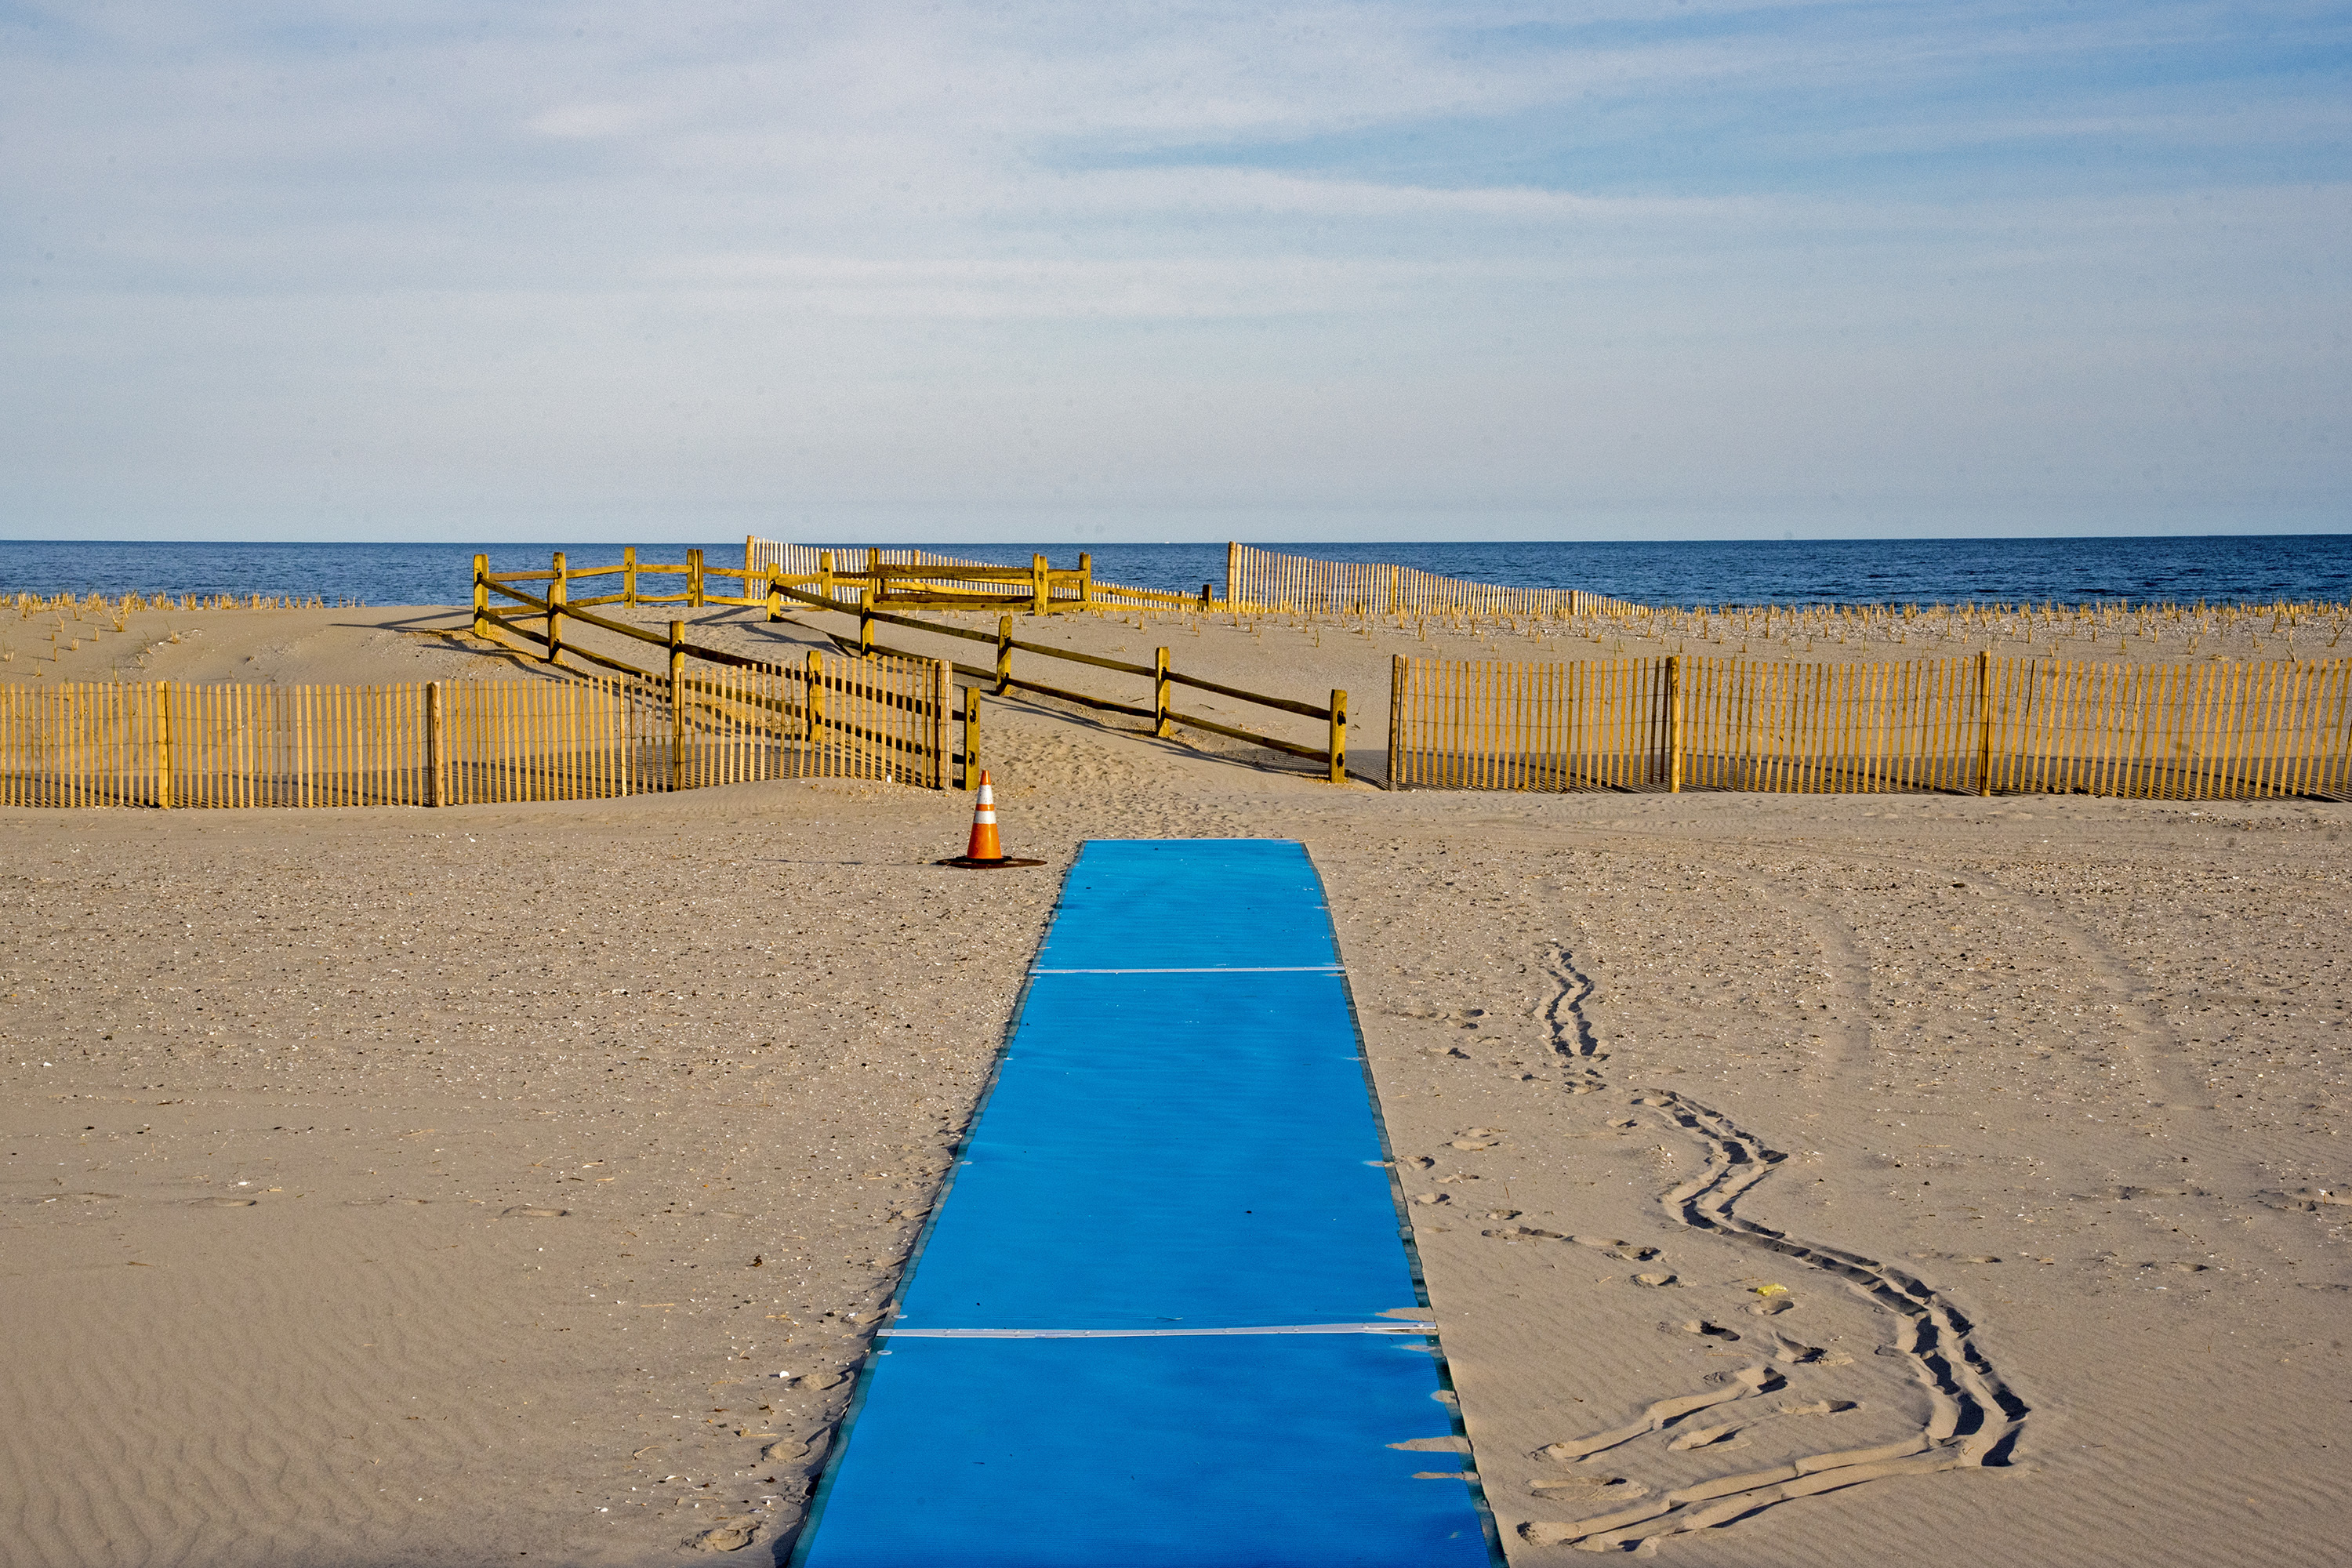 A walkway from the bulkhead to the new dunes on a Margate beach April 23, 2018, after completion of the Army Corps of Engineers' beach replenishment and dune construction project. Some Margate residents would like to see Ventnor´s boardwalk extended into their town.